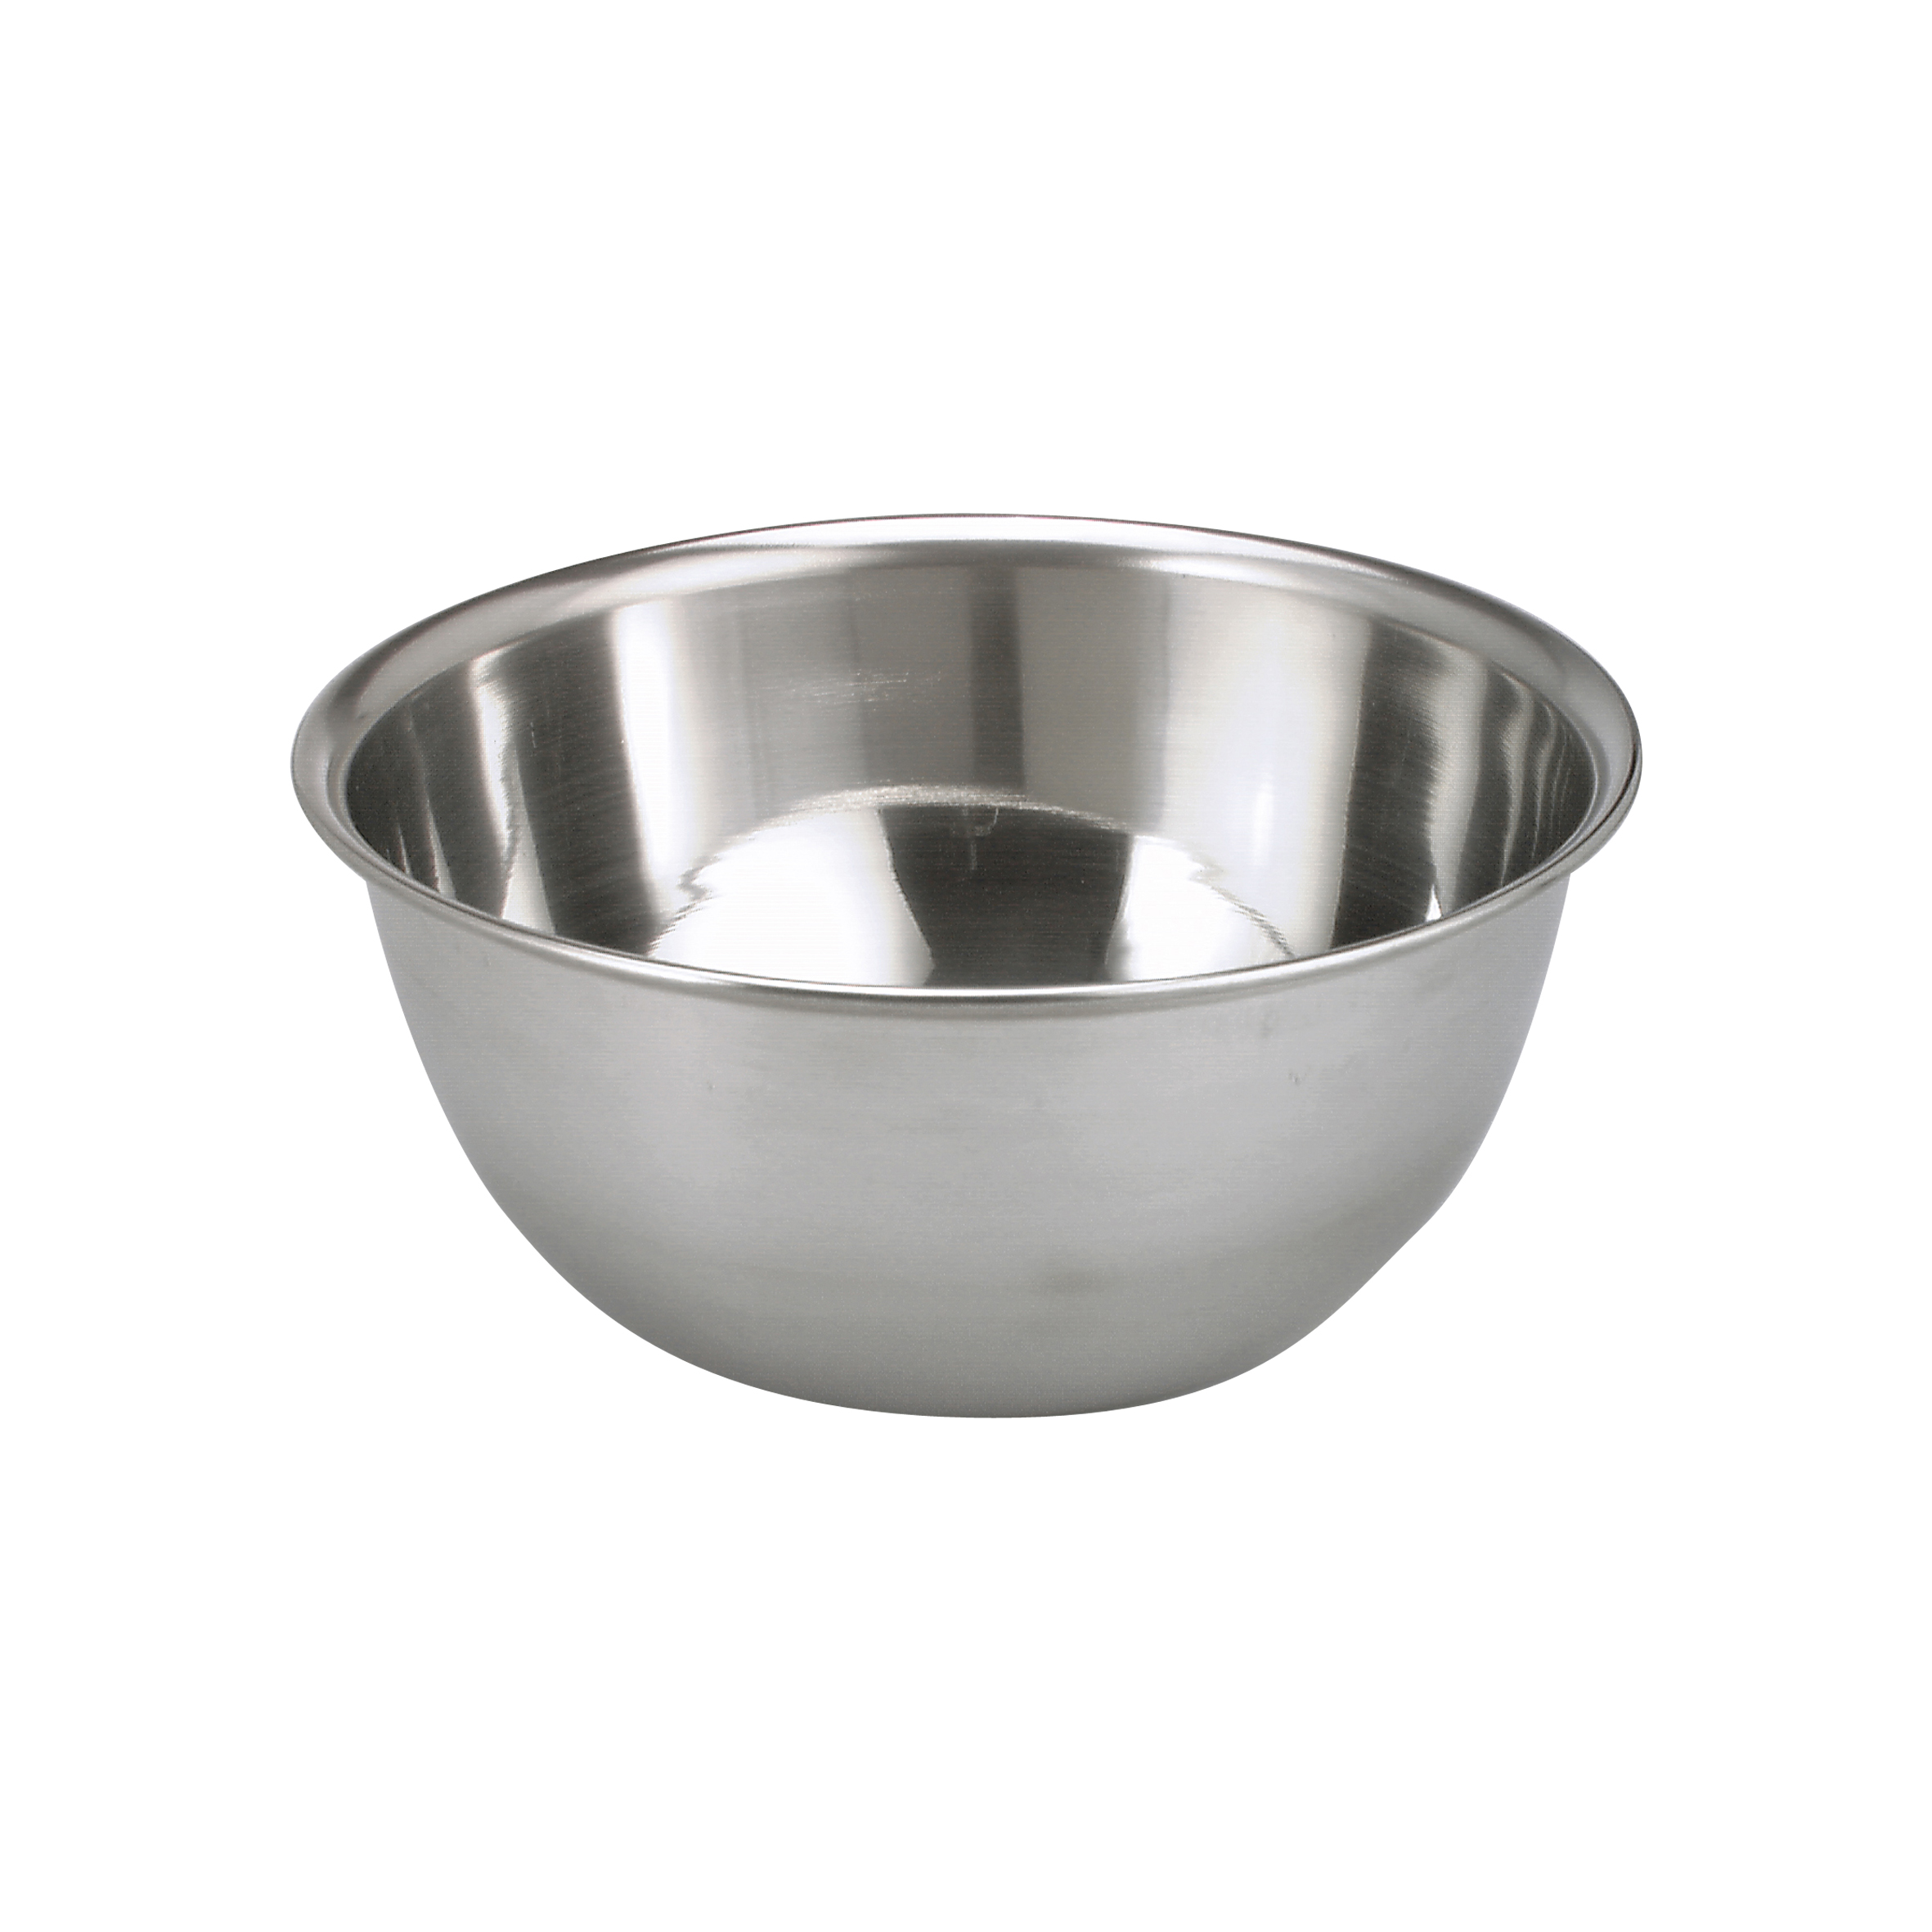 Stainless Steel Mixing Bowl 2.7L